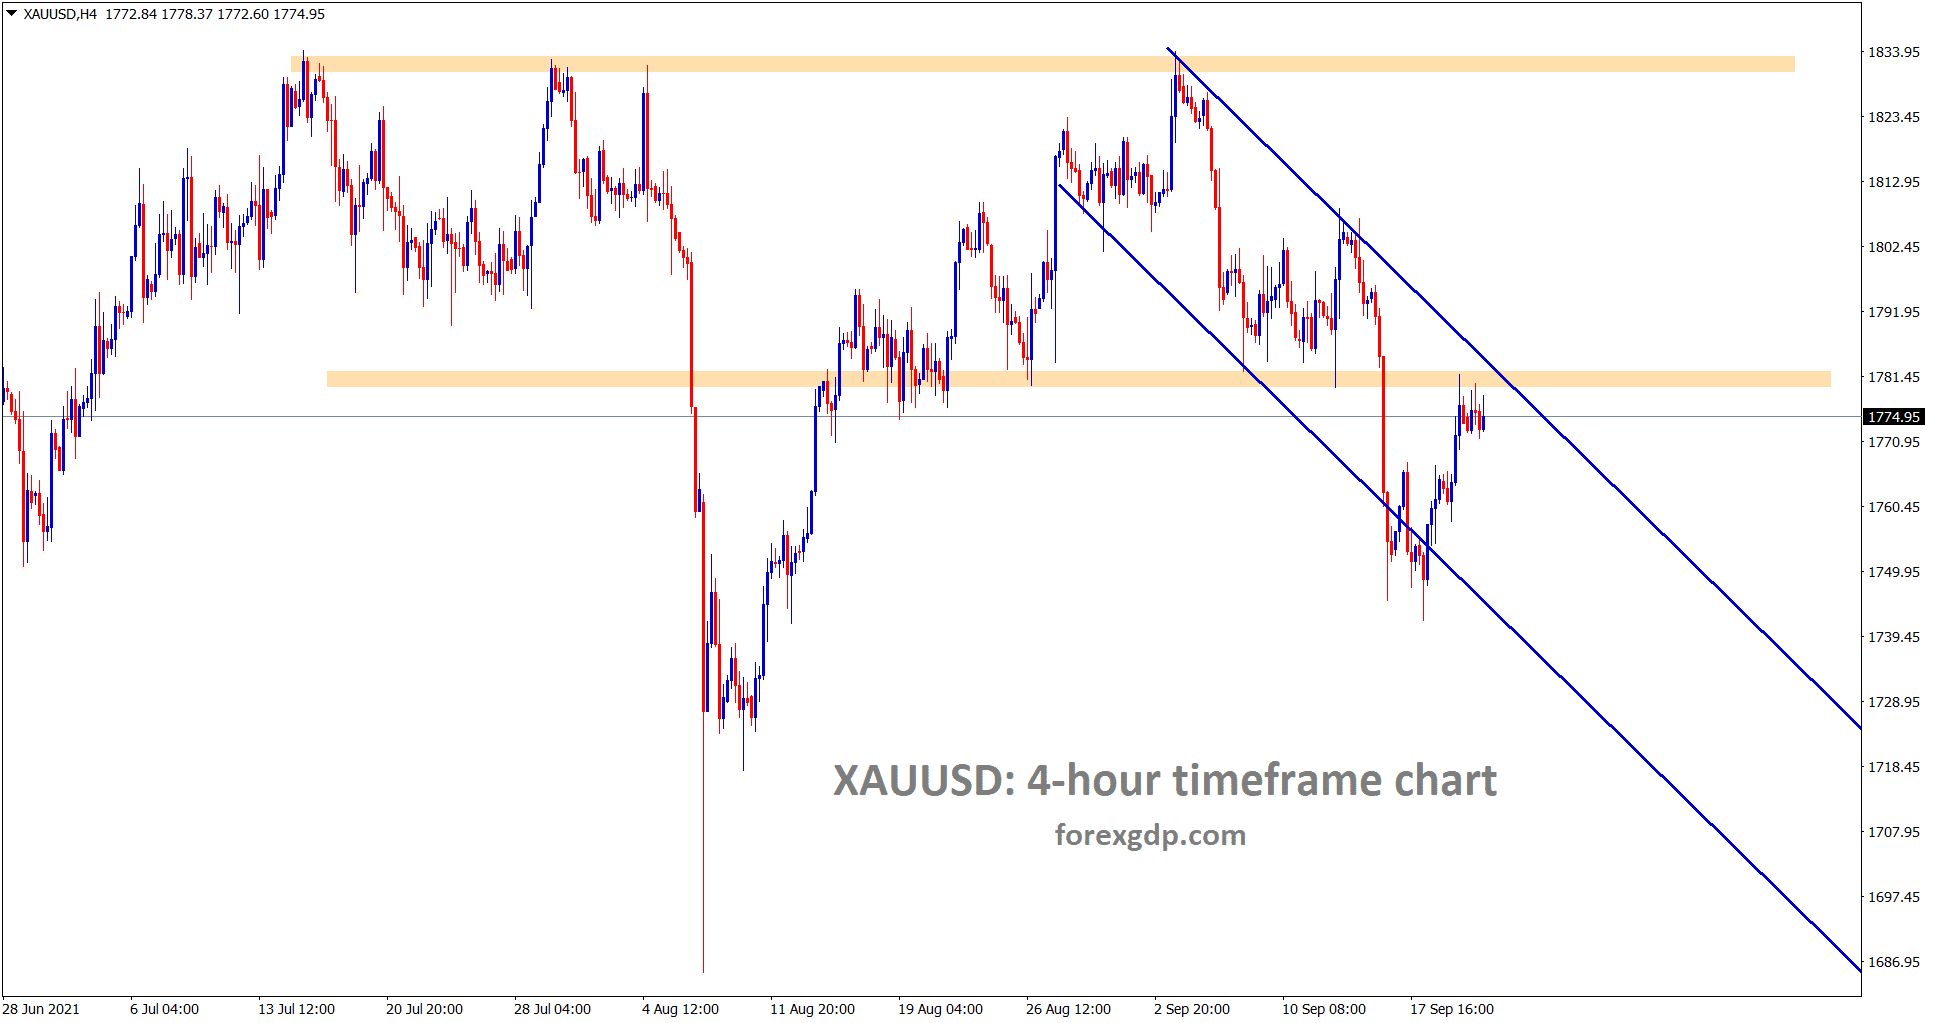 Gold is moving in a descending channel and also hits the previous horizontal support area which have chances to convert into new resistance